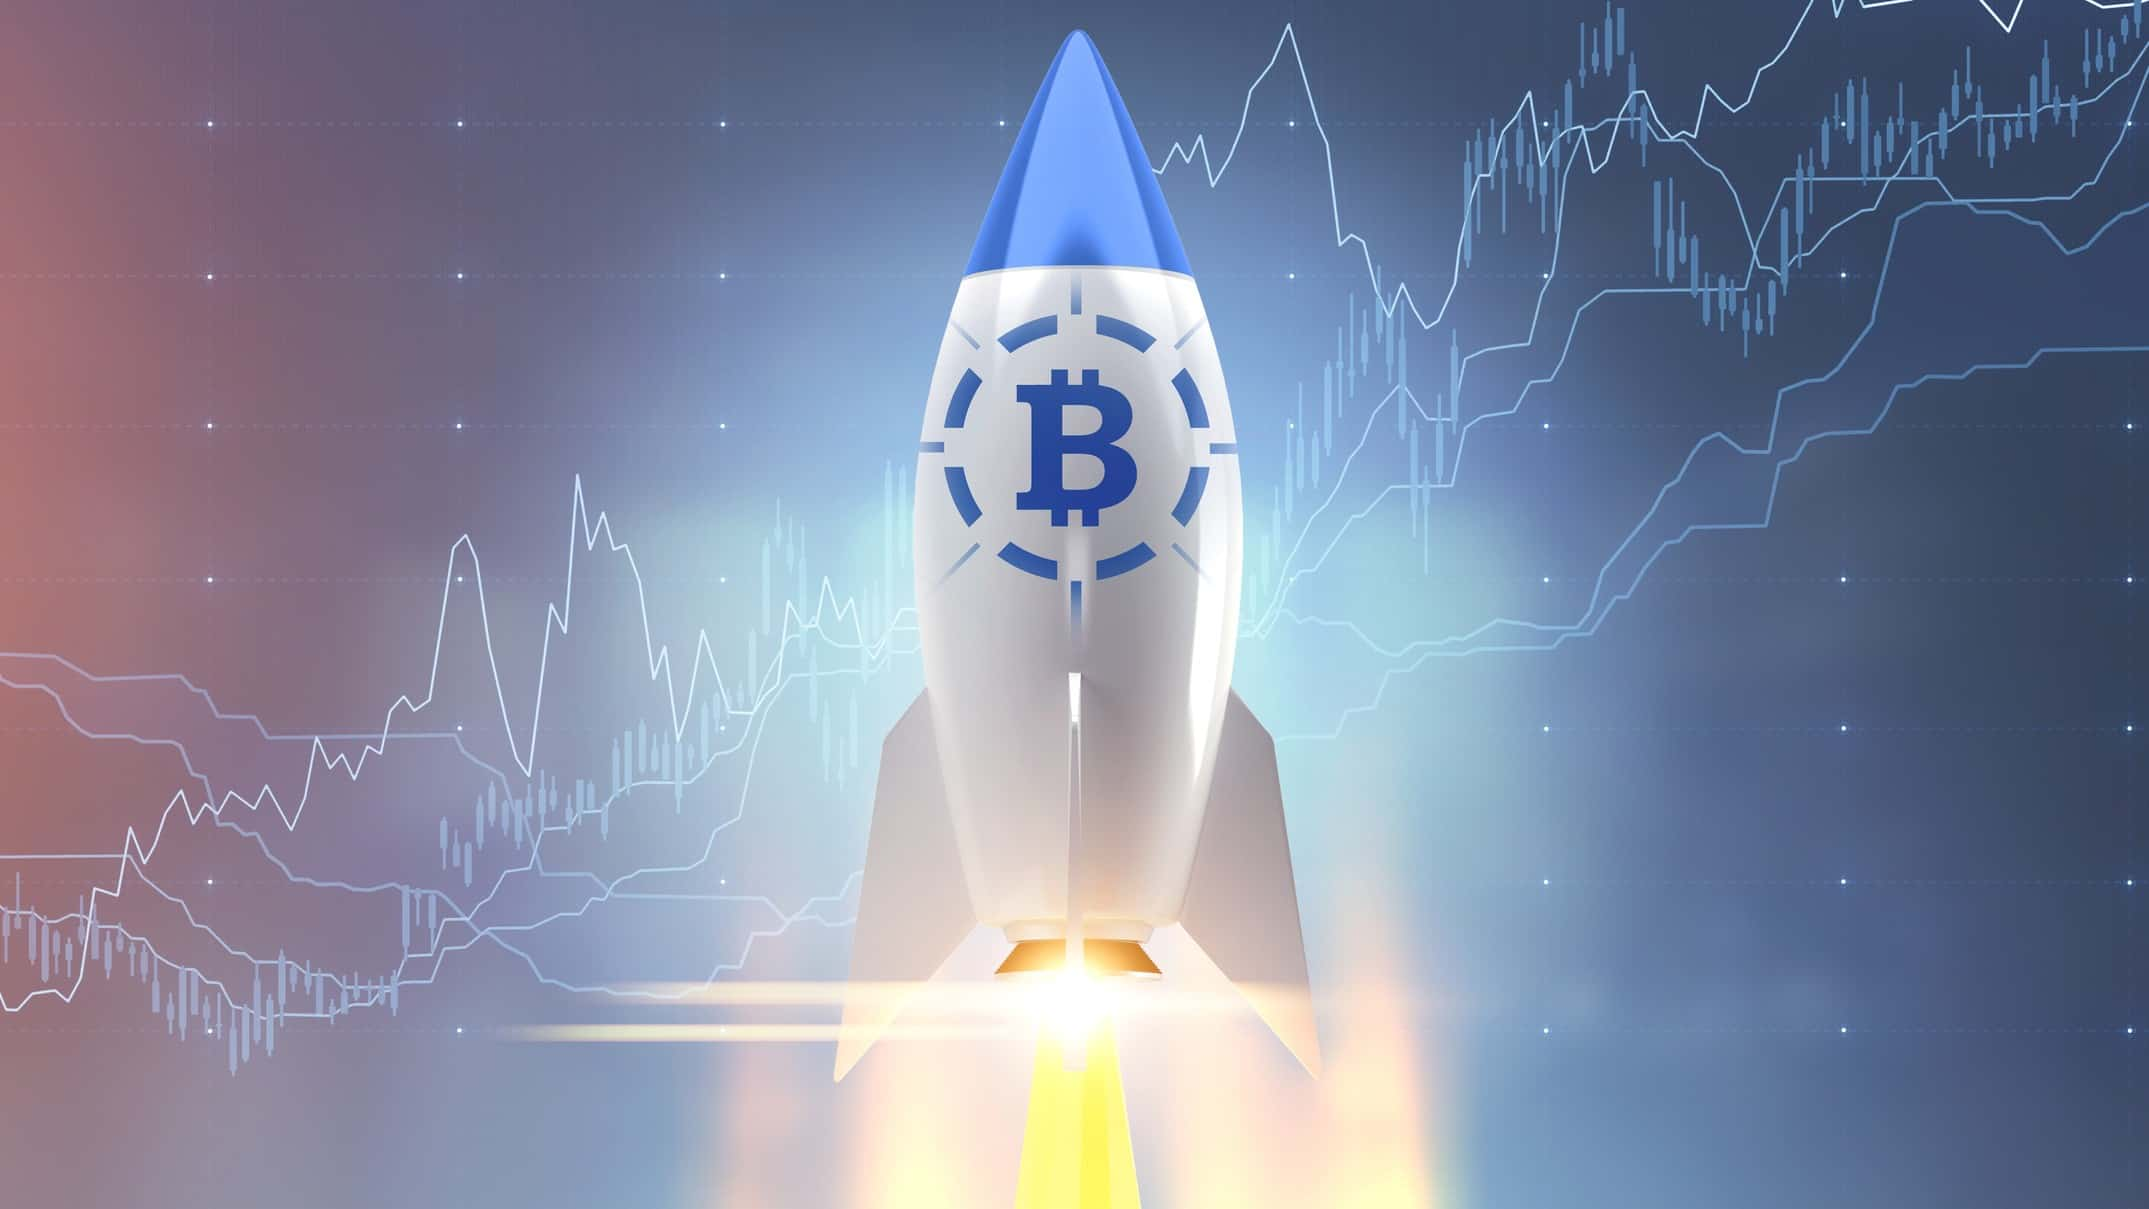 A rocket with a bitcoin symbol take off, indicating a surging or record high price in the cryptocurrency